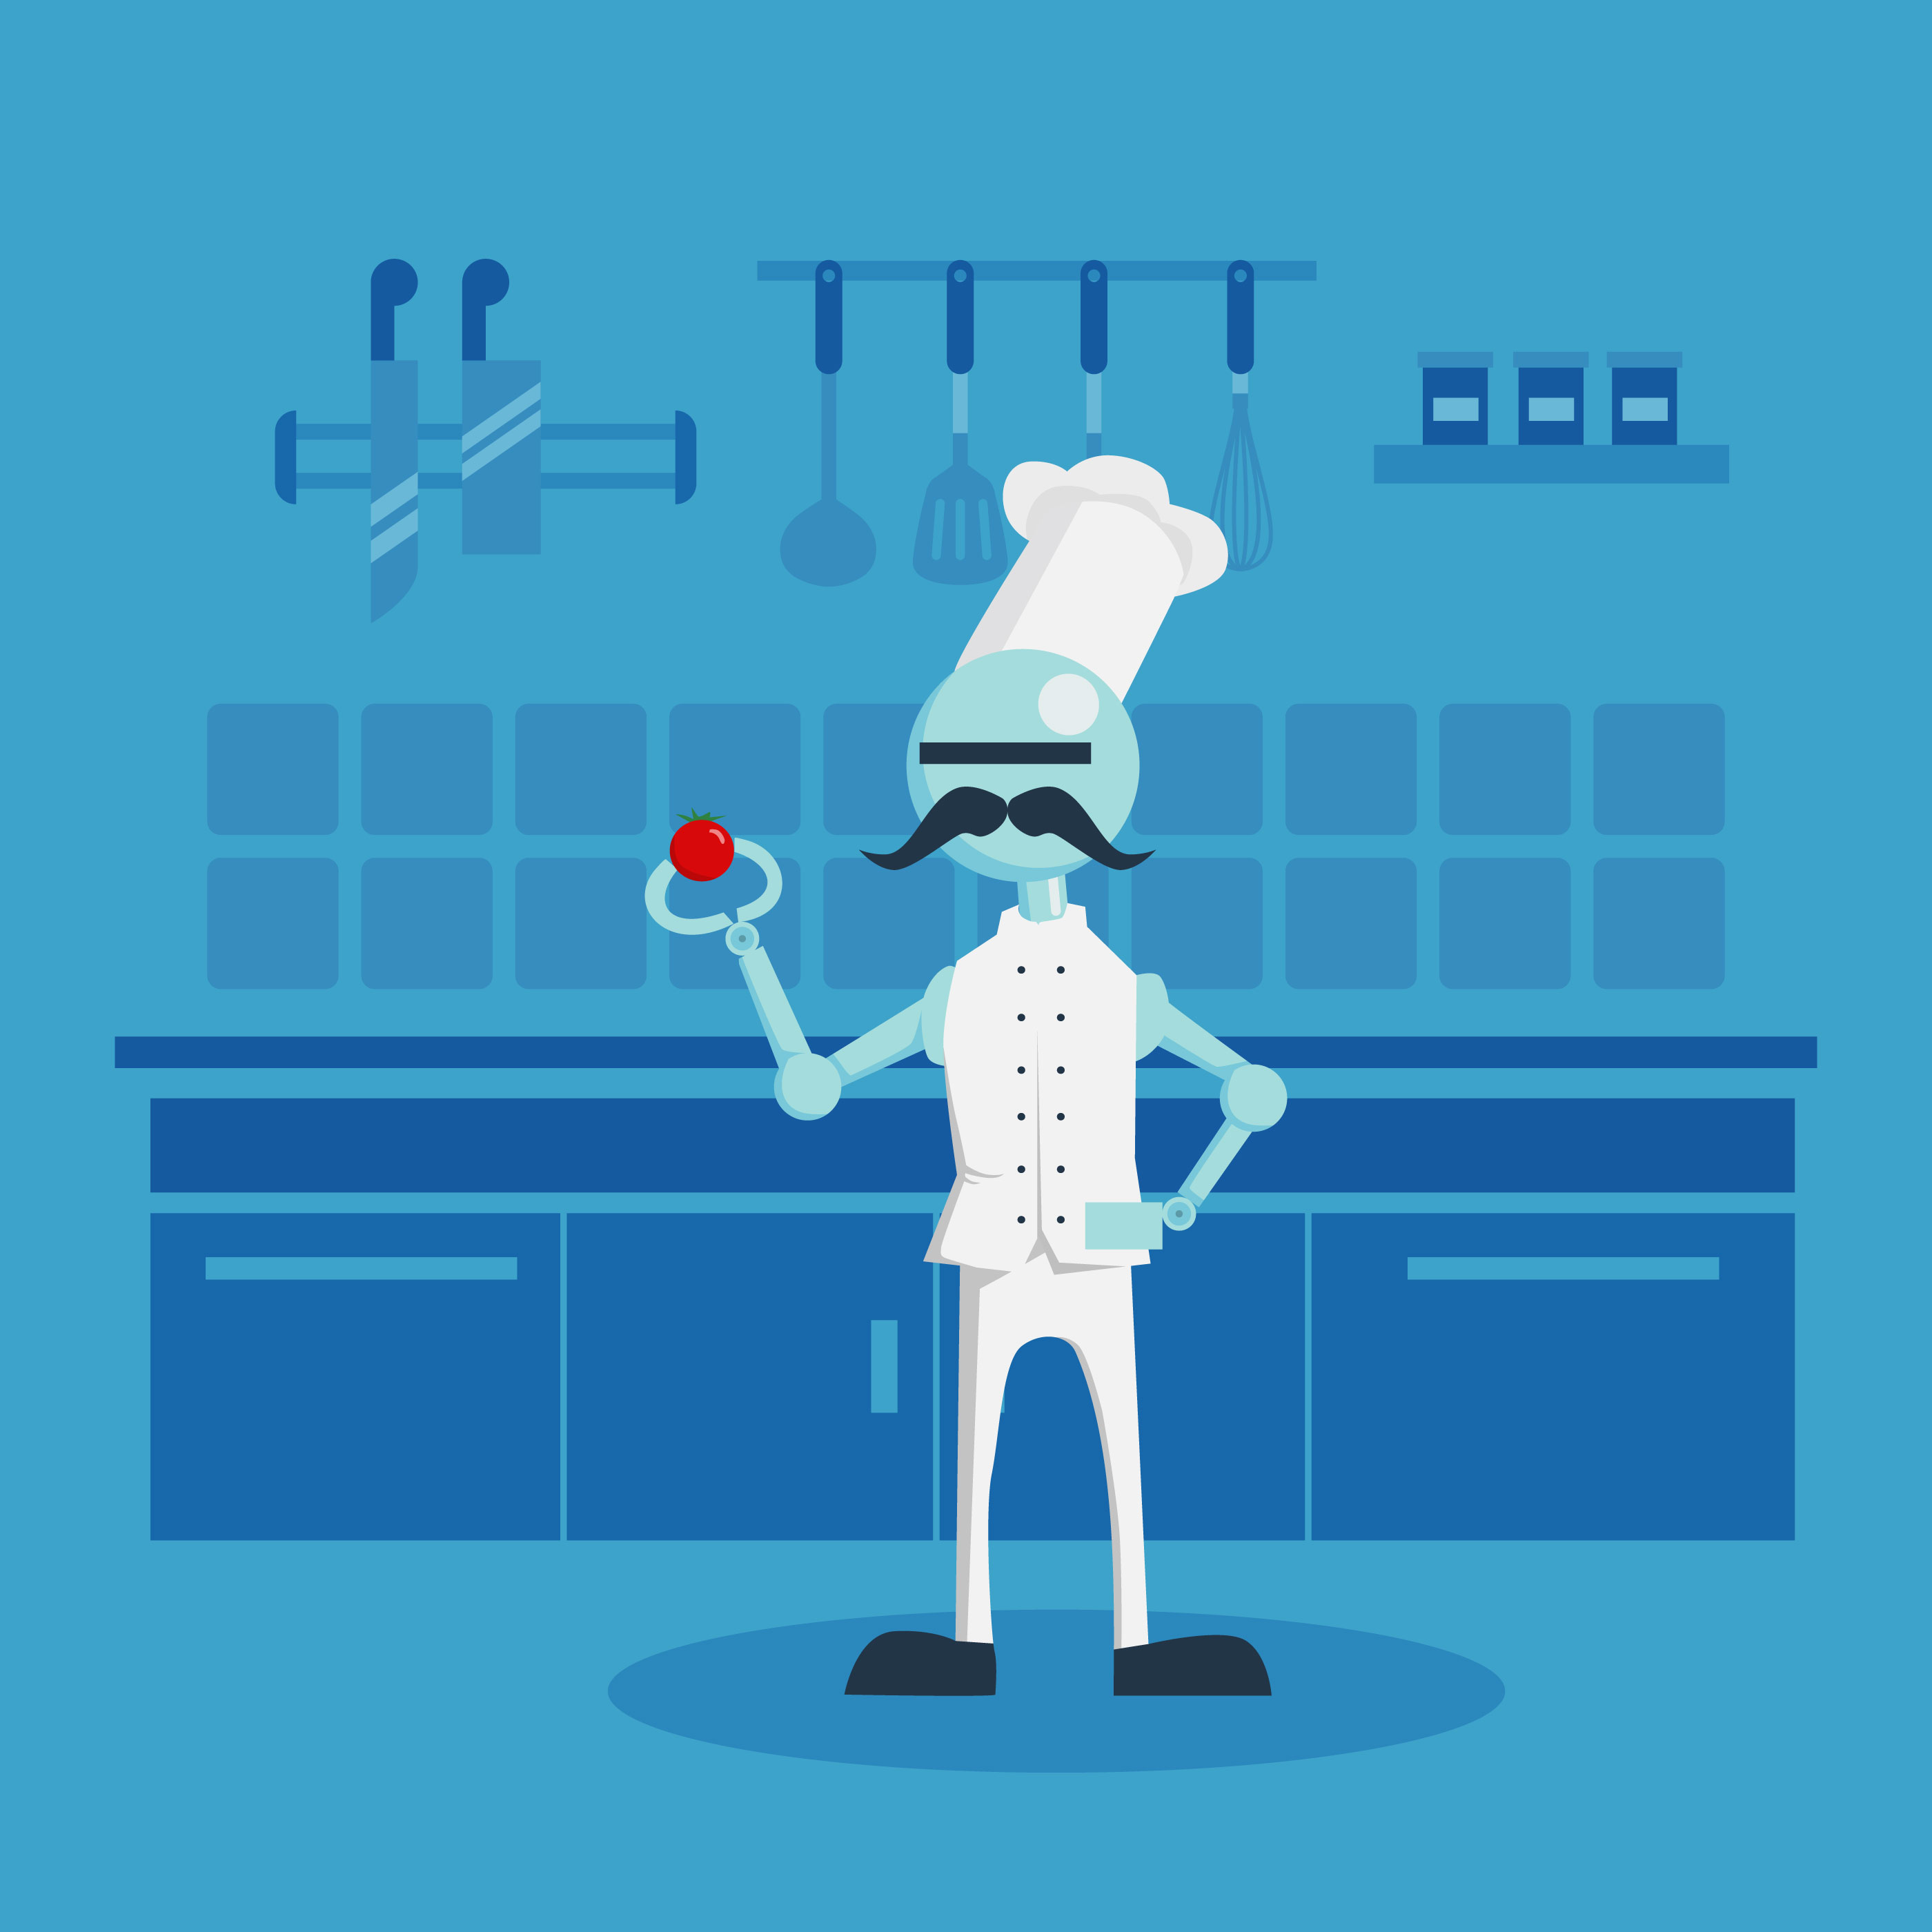 Ai robot chef illustration download free vector art - Robot supreme chef ...